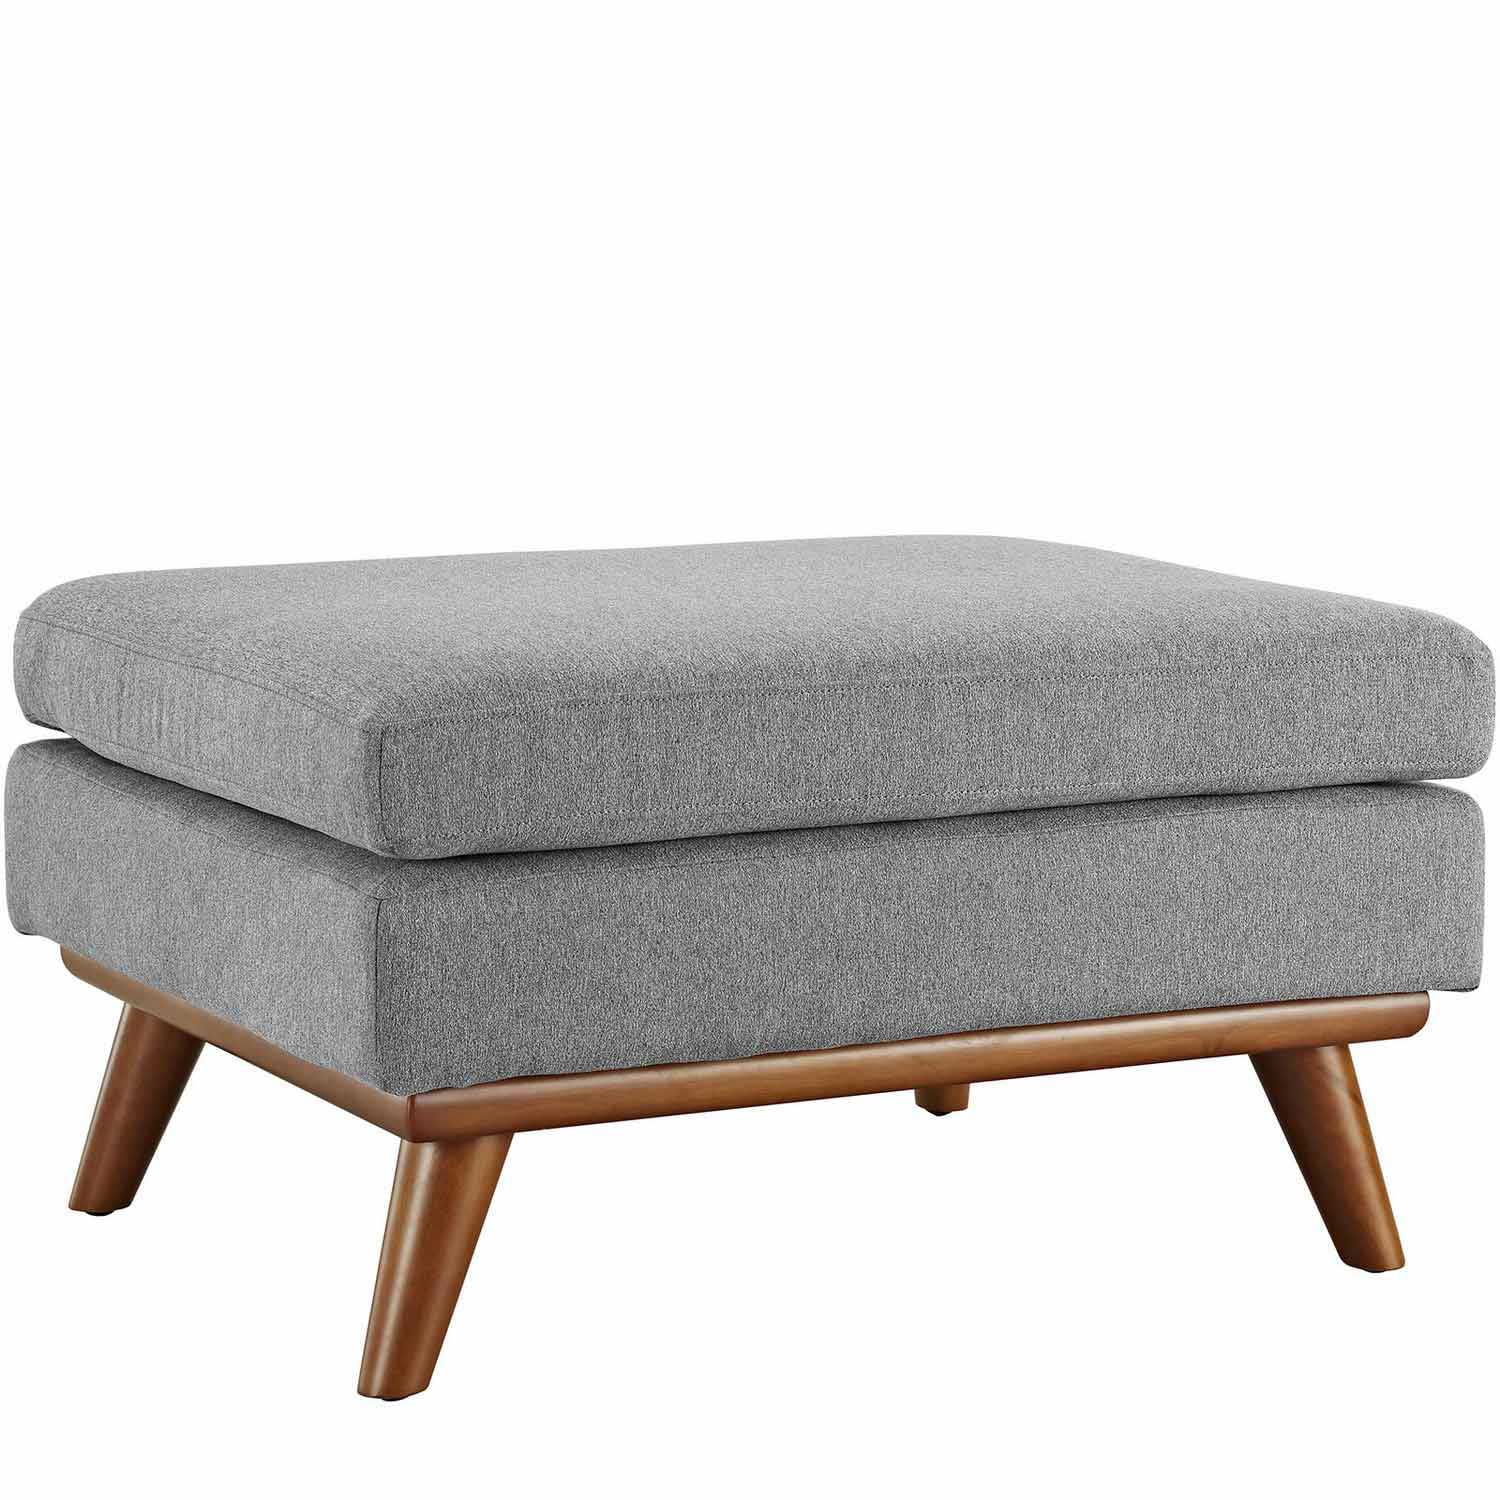 Modway Engage Fabric Ottoman - Expectation Gray